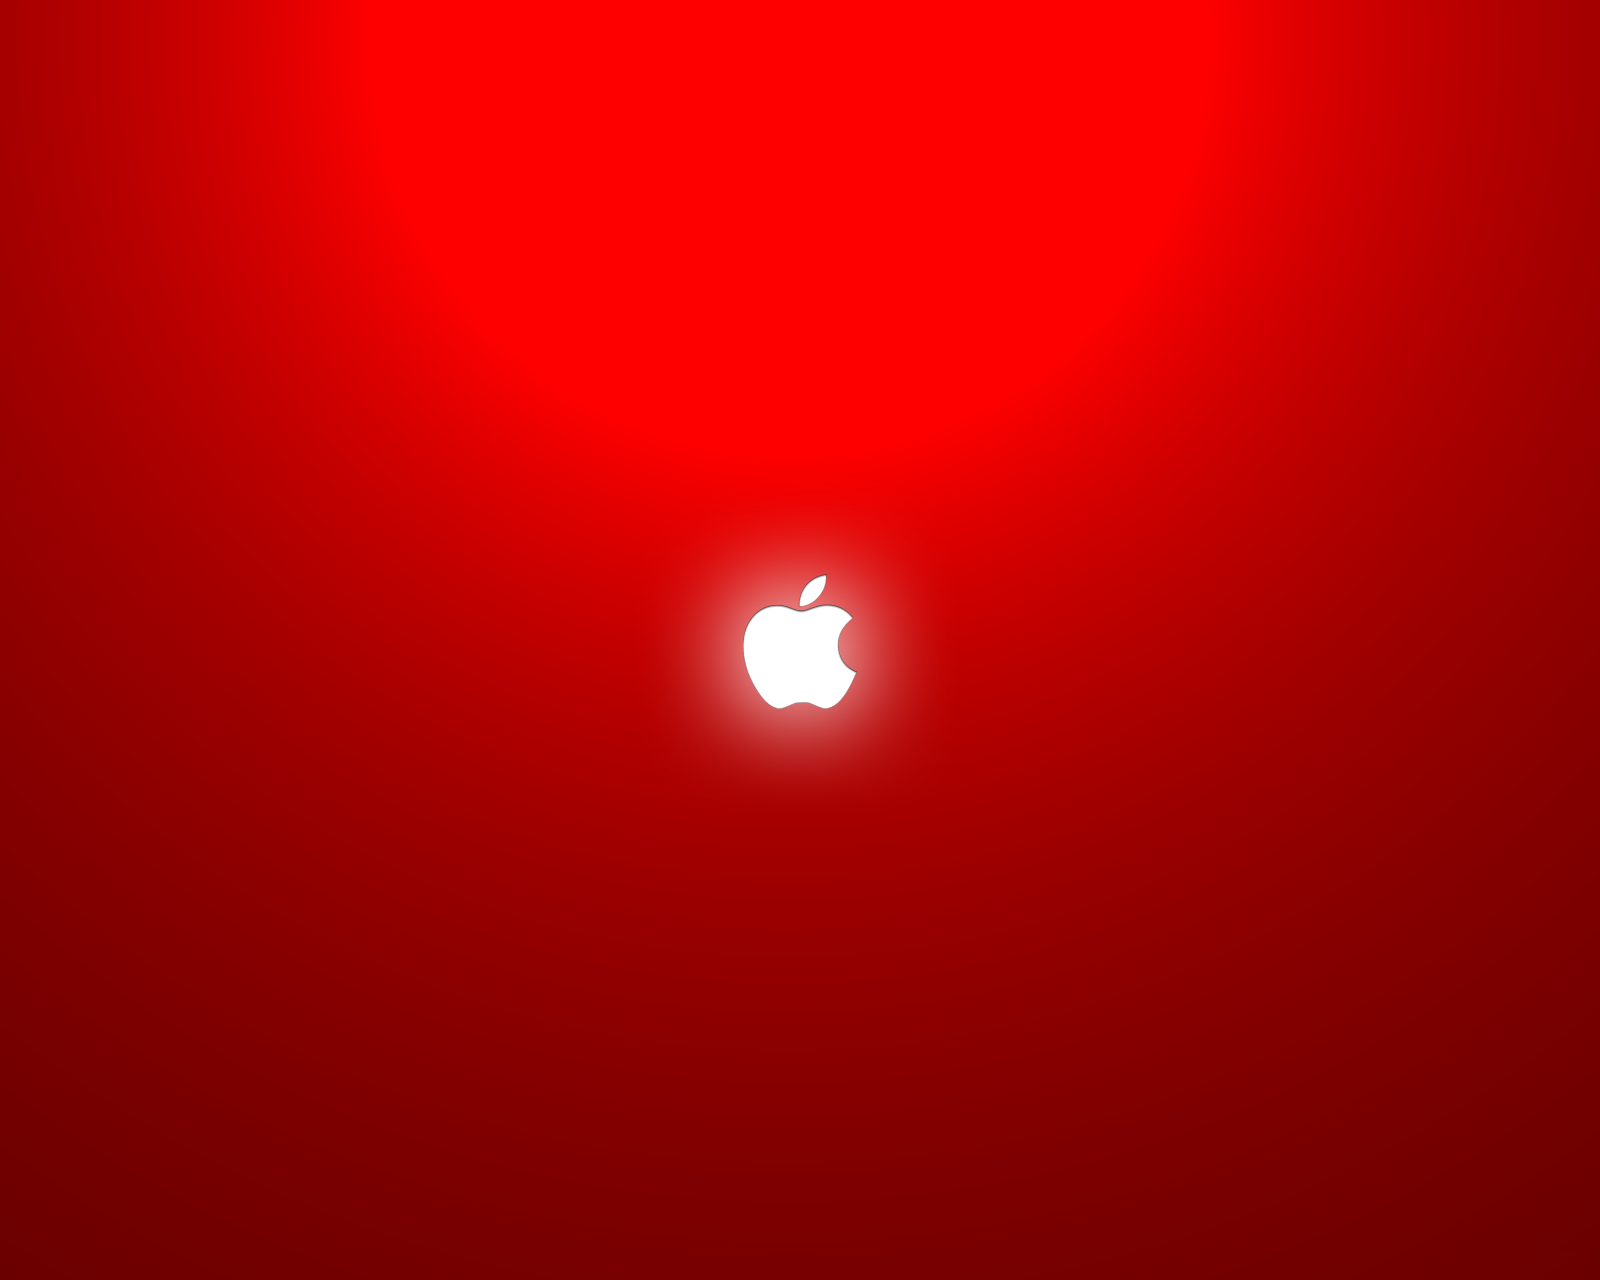 Red Apple Wallpapers Iphone Wallpaper Red Colour 1979262 Hd Wallpaper Backgrounds Download